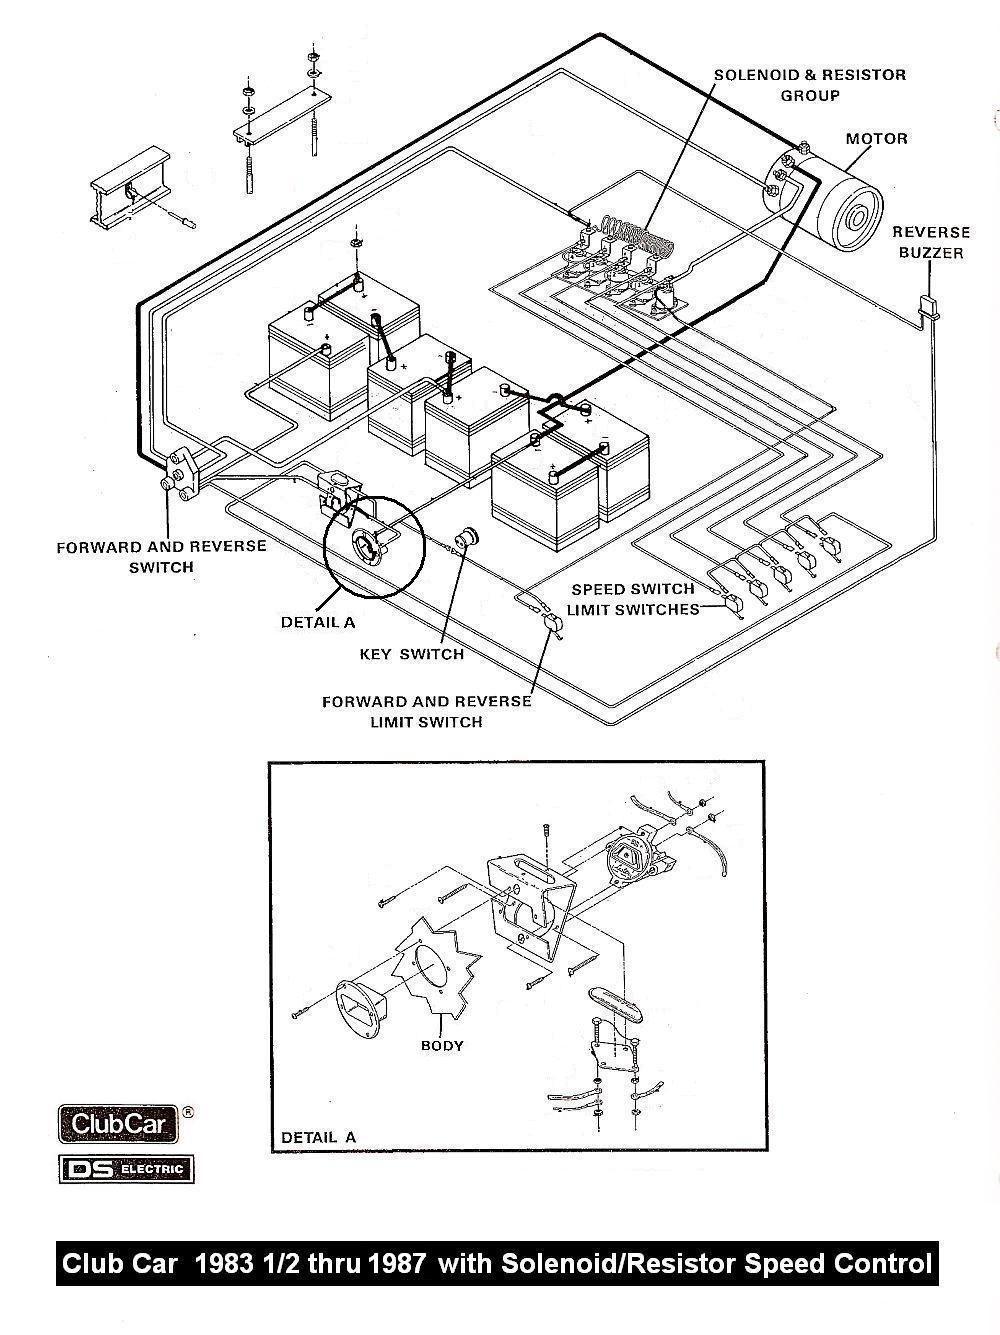 vintagegolfcartparts com freezer crock pot golf carts club car 48v motor wiring diagram club car motor diagram [ 1000 x 1335 Pixel ]